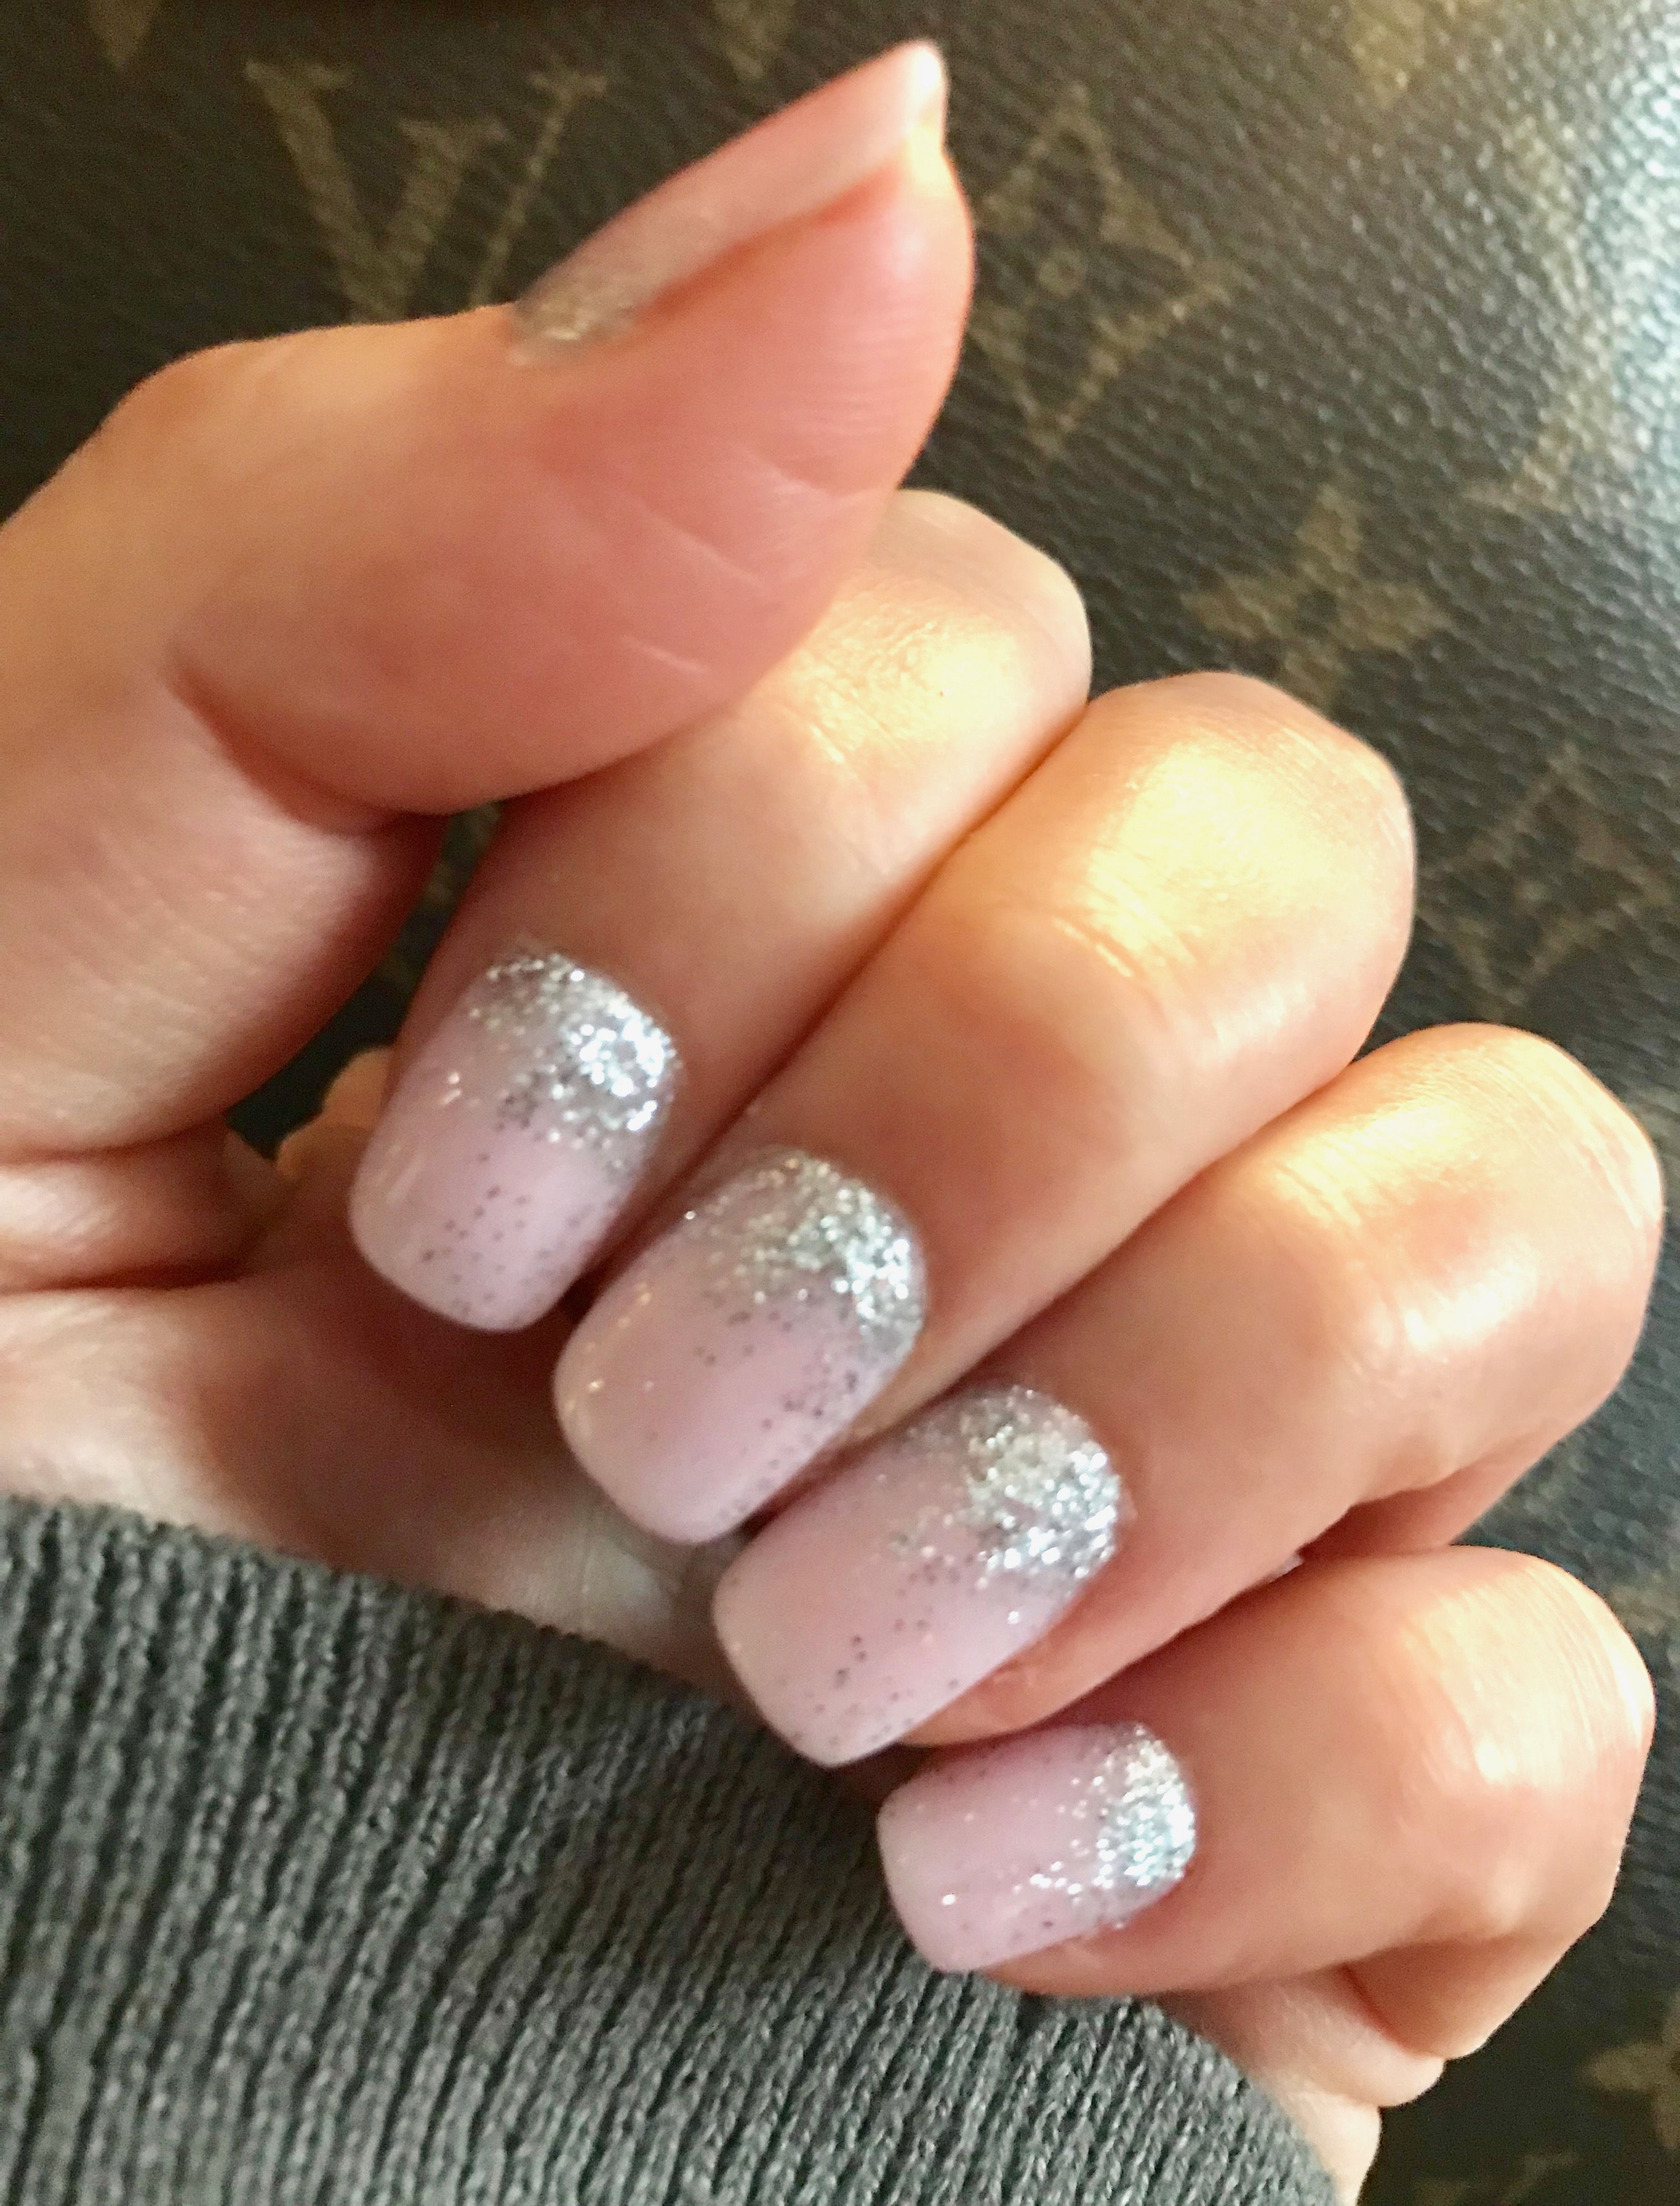 Discussion on this topic: 15 Glitter Manicure Ideas For Winter Holidays, 15-glitter-manicure-ideas-for-winter-holidays/